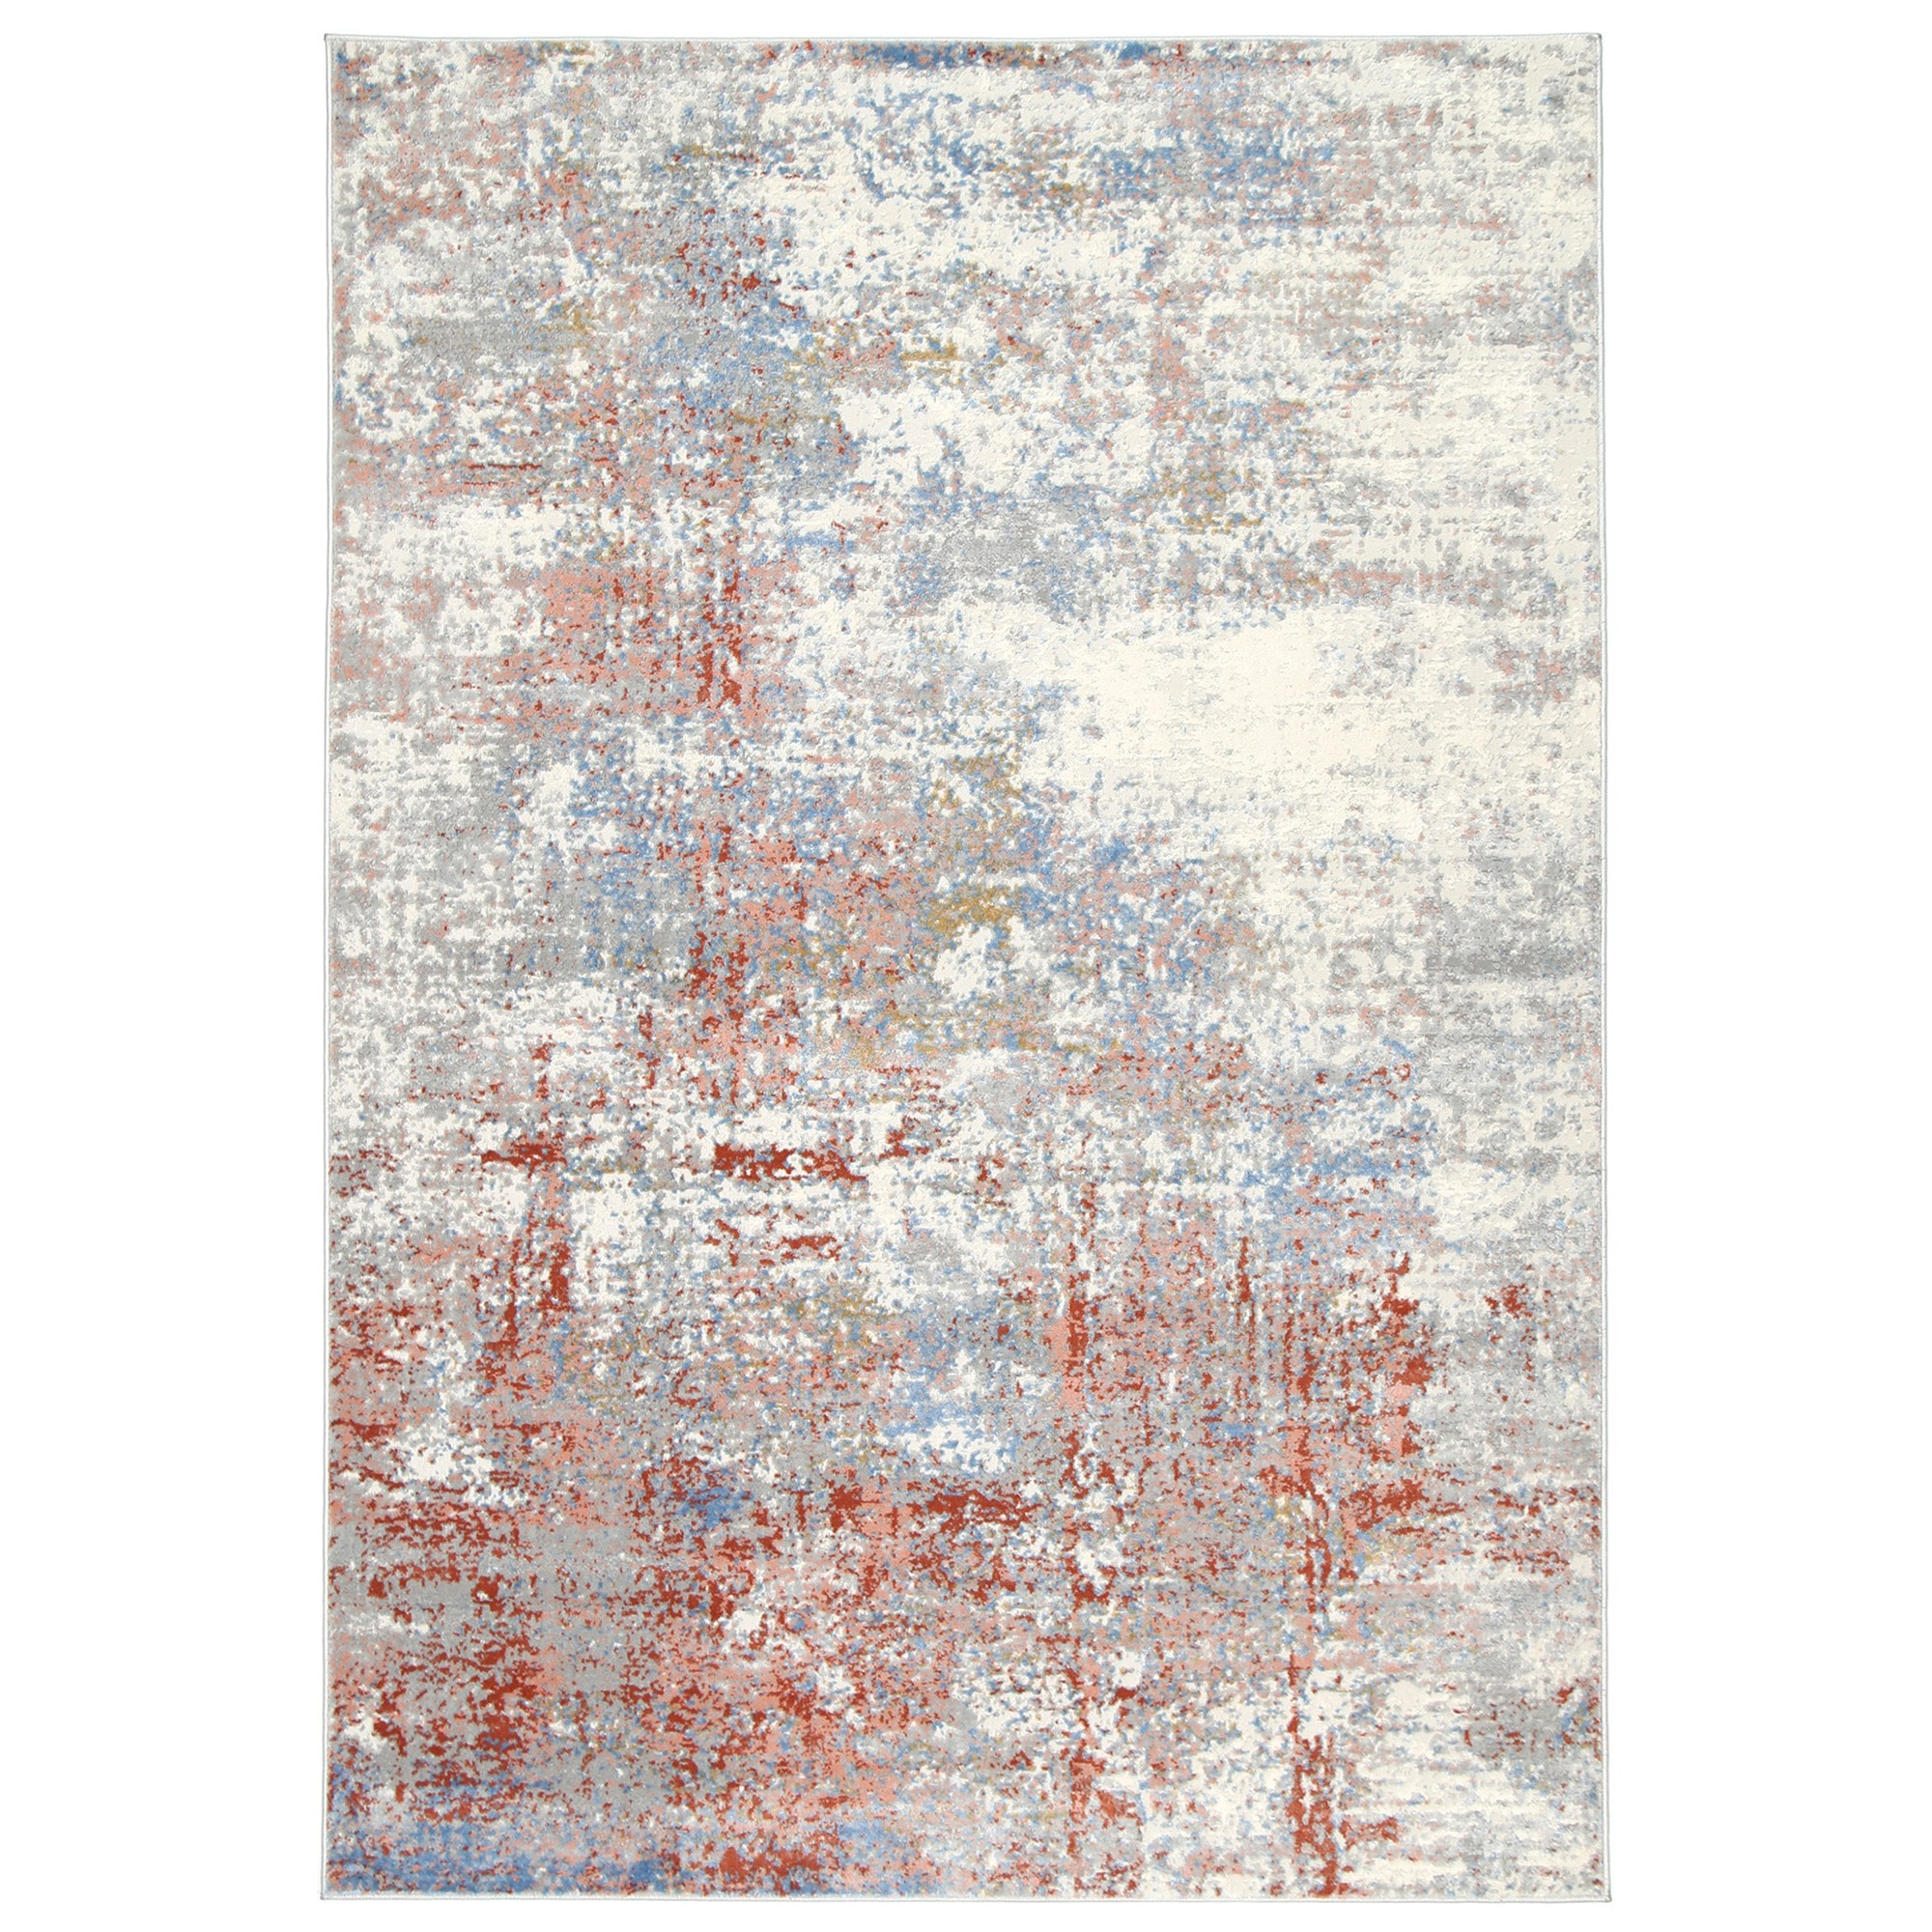 Expressions No.08 Transitional Rug, 400x300cm, Beige / Rust